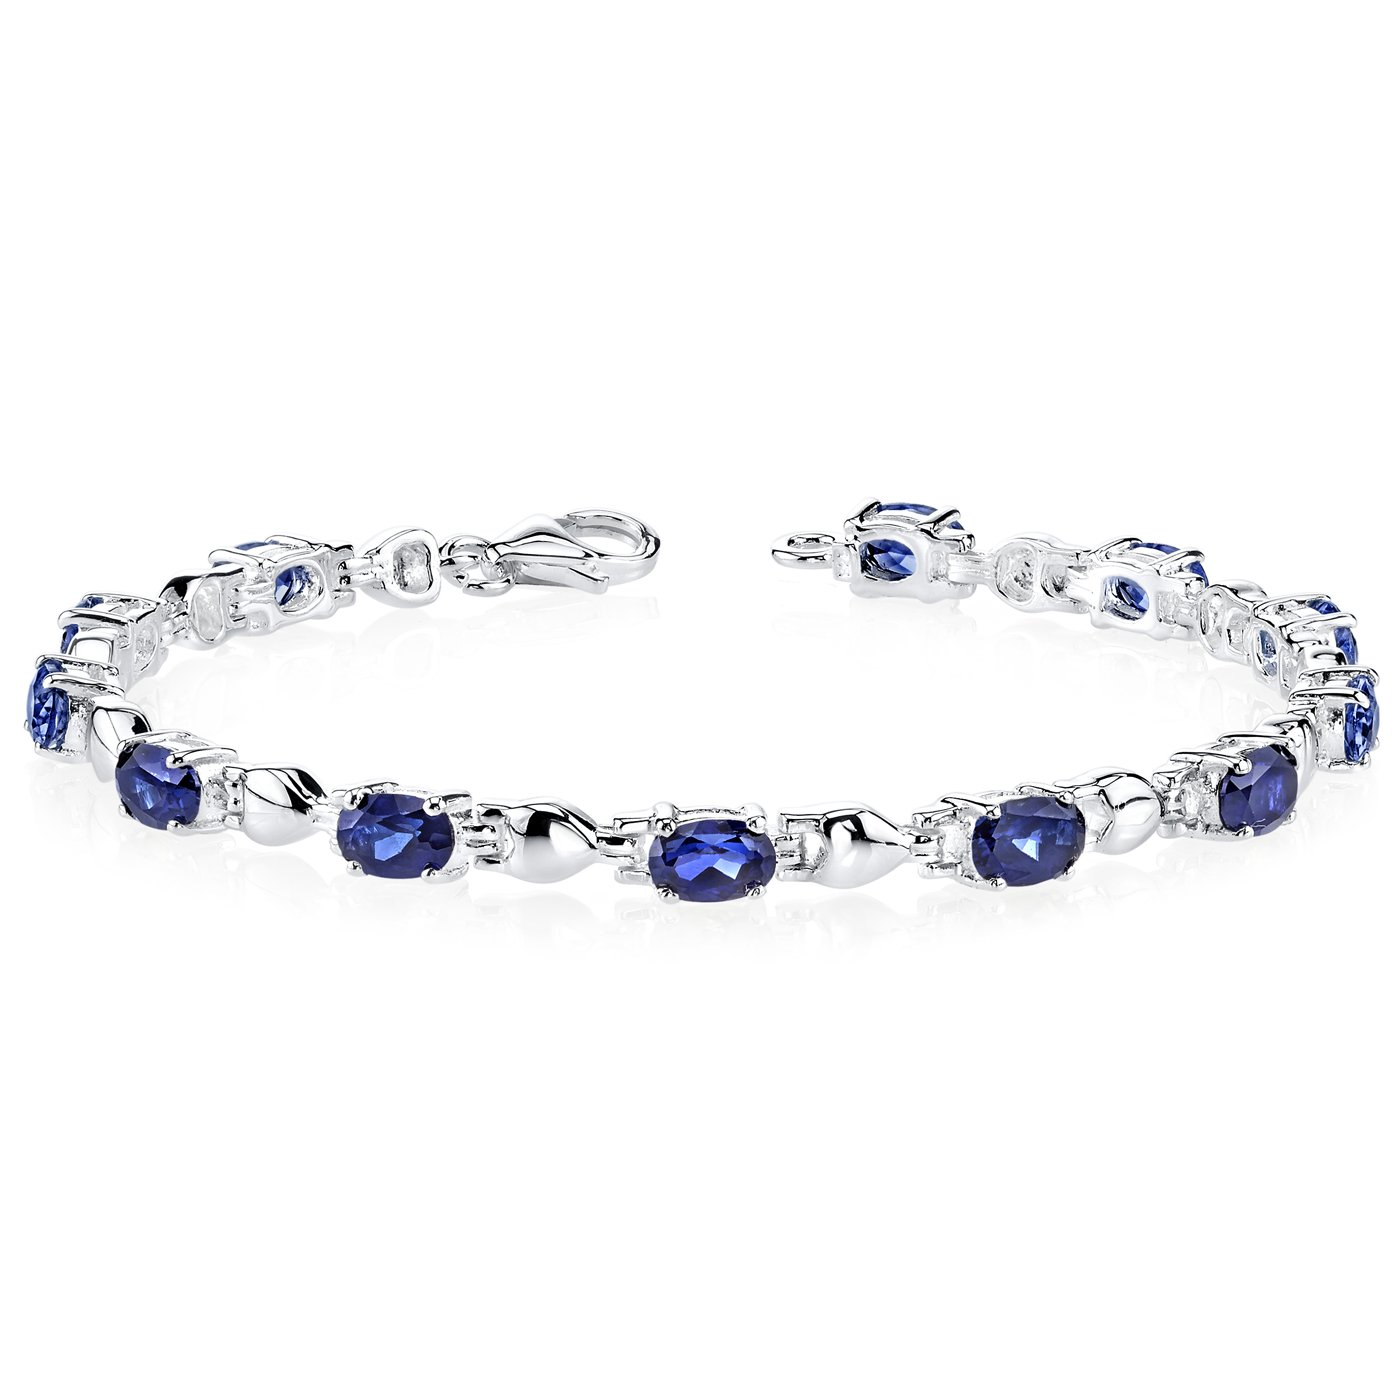 Exquisite Classic: Oval Shape Created Blue Sapphire Gemstone Bracelet in Sterling Silver Rhodium Nickel Finish by Peora (Image #1)